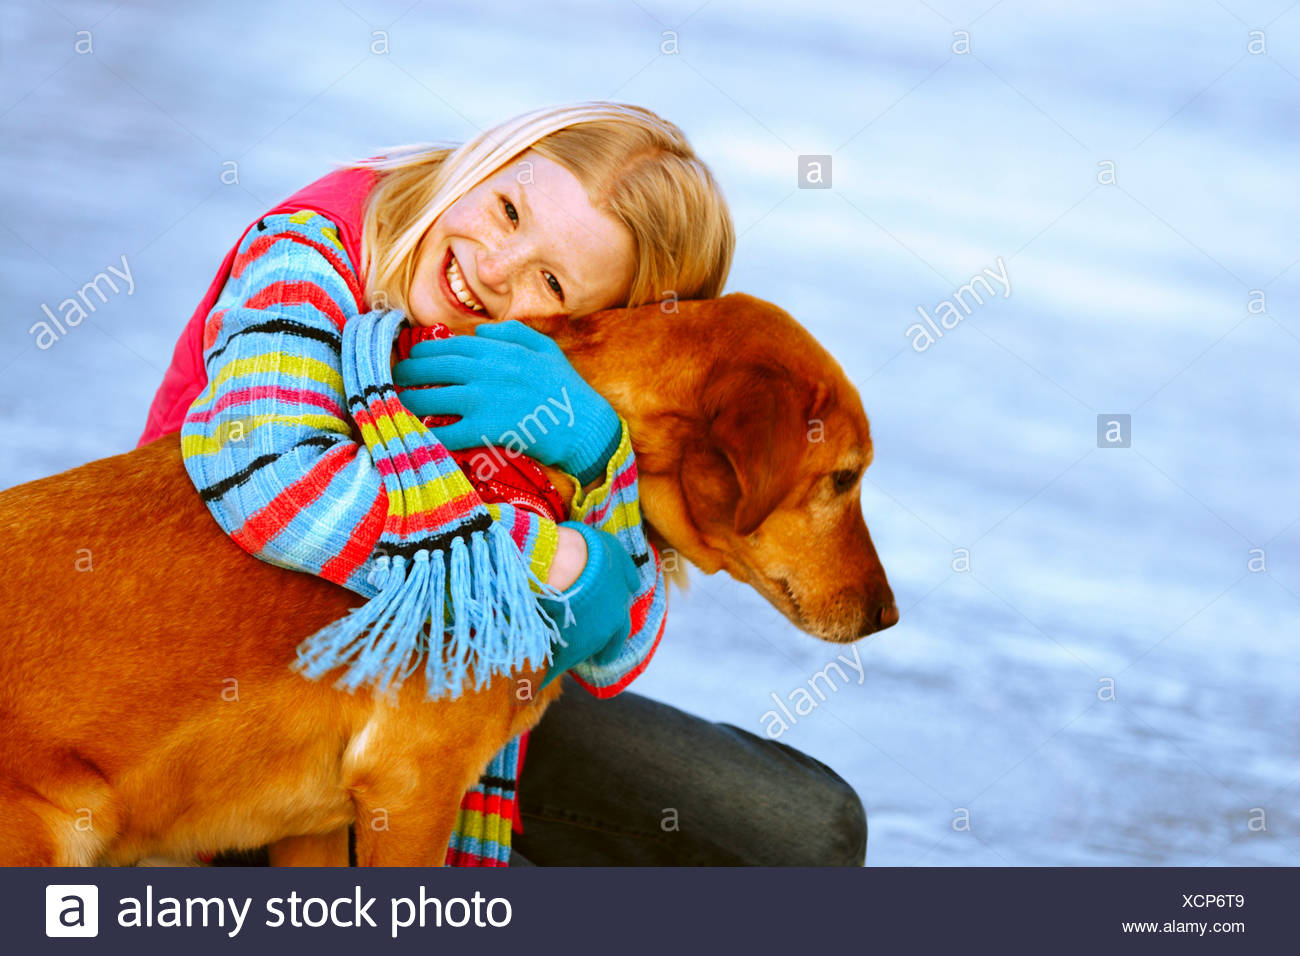 Young girl embracing her dog - Stock Image